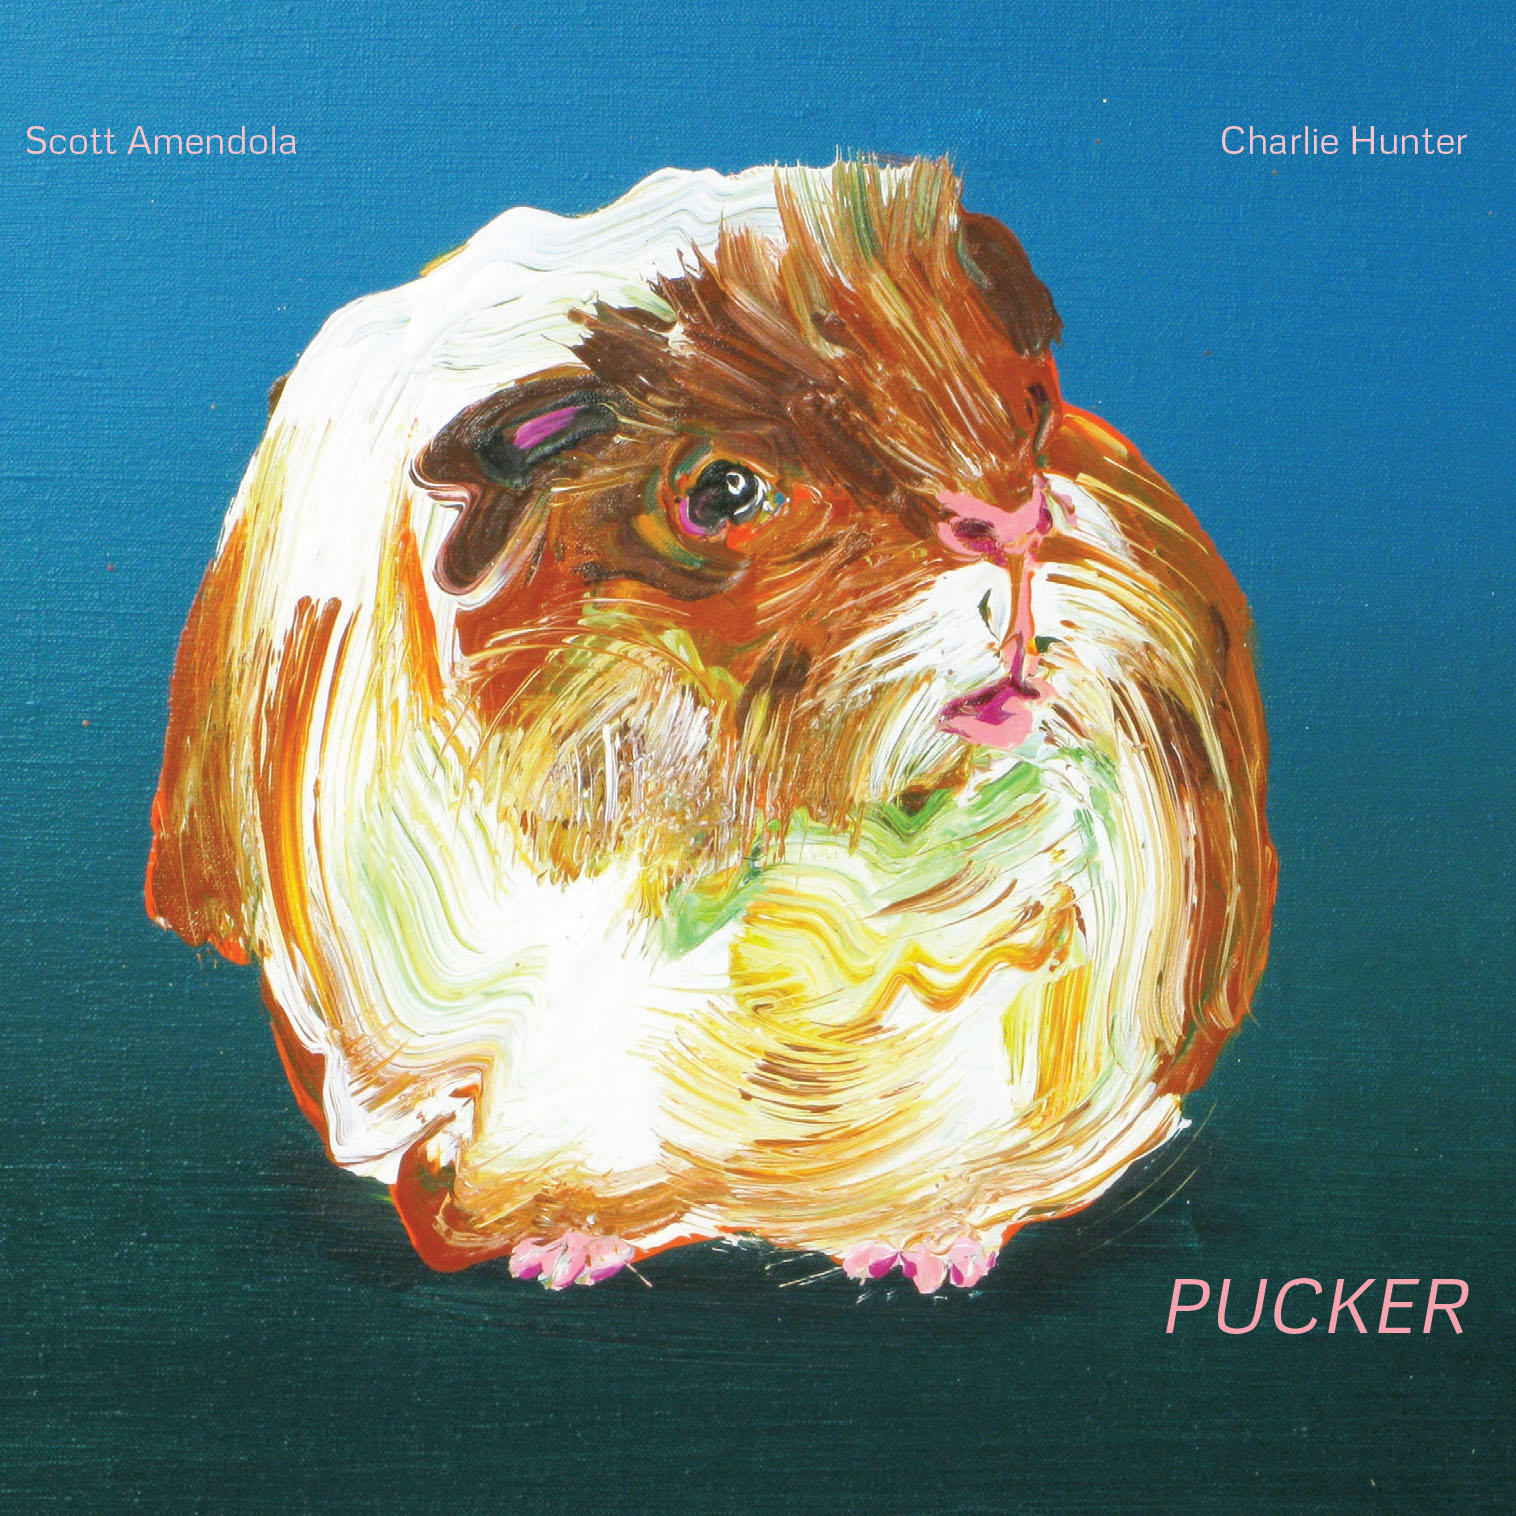 Scott Amendola & Charlie Hunter – Pucker